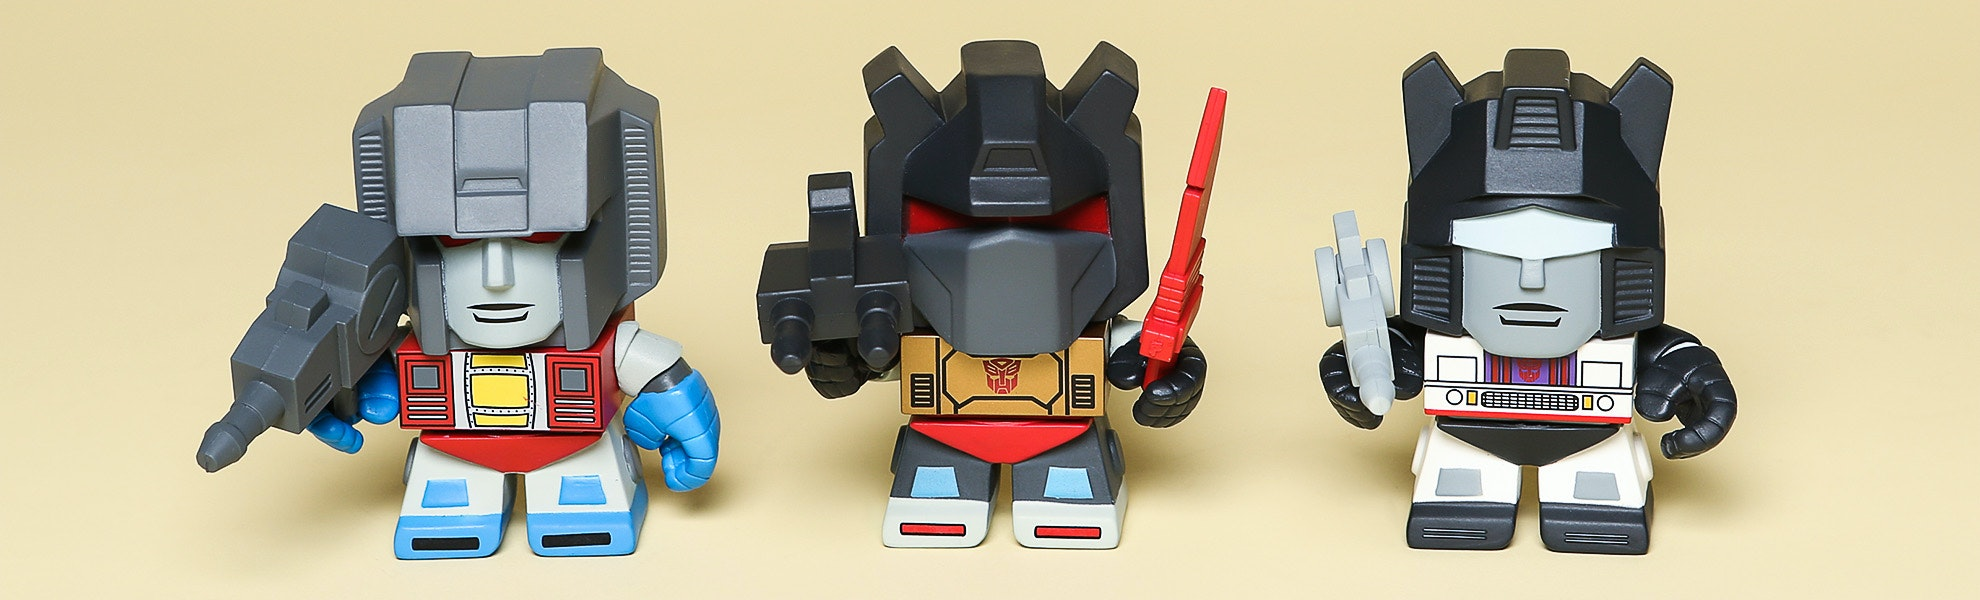 Transformers Series 1 Blind Box Vinyl Figures